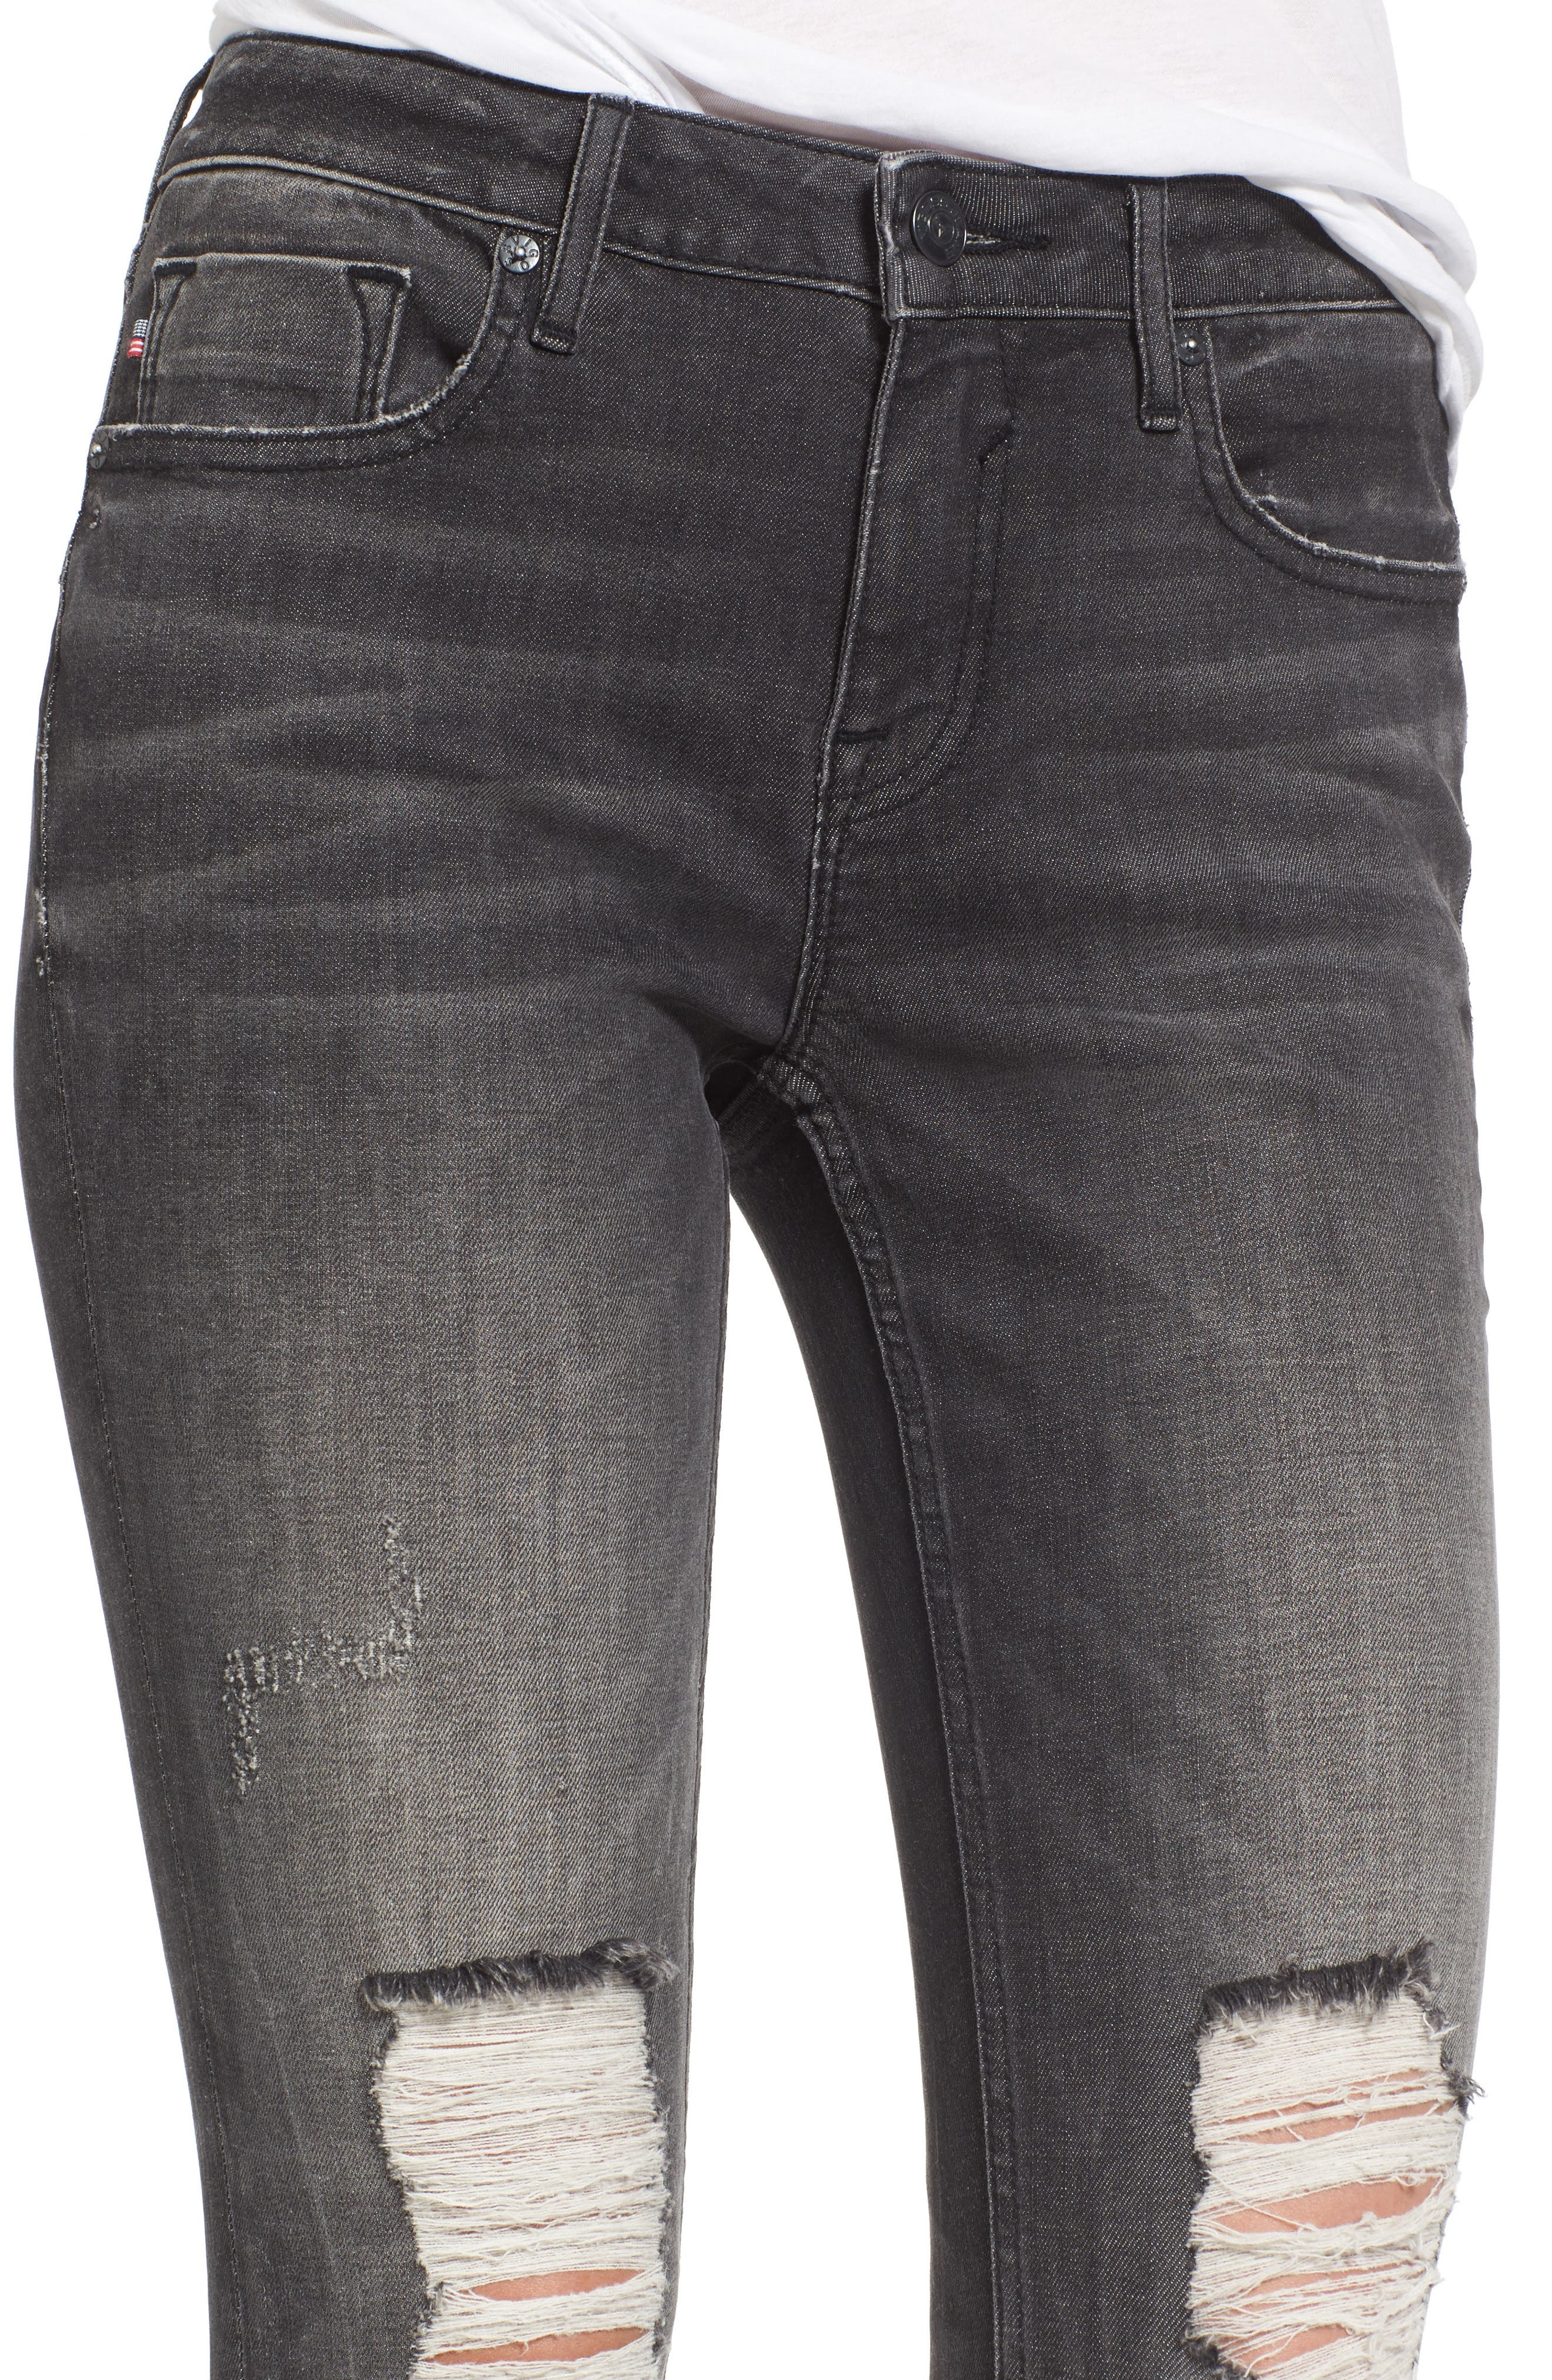 Jagger Ripped Skinny Jeans,                             Alternate thumbnail 4, color,                             020